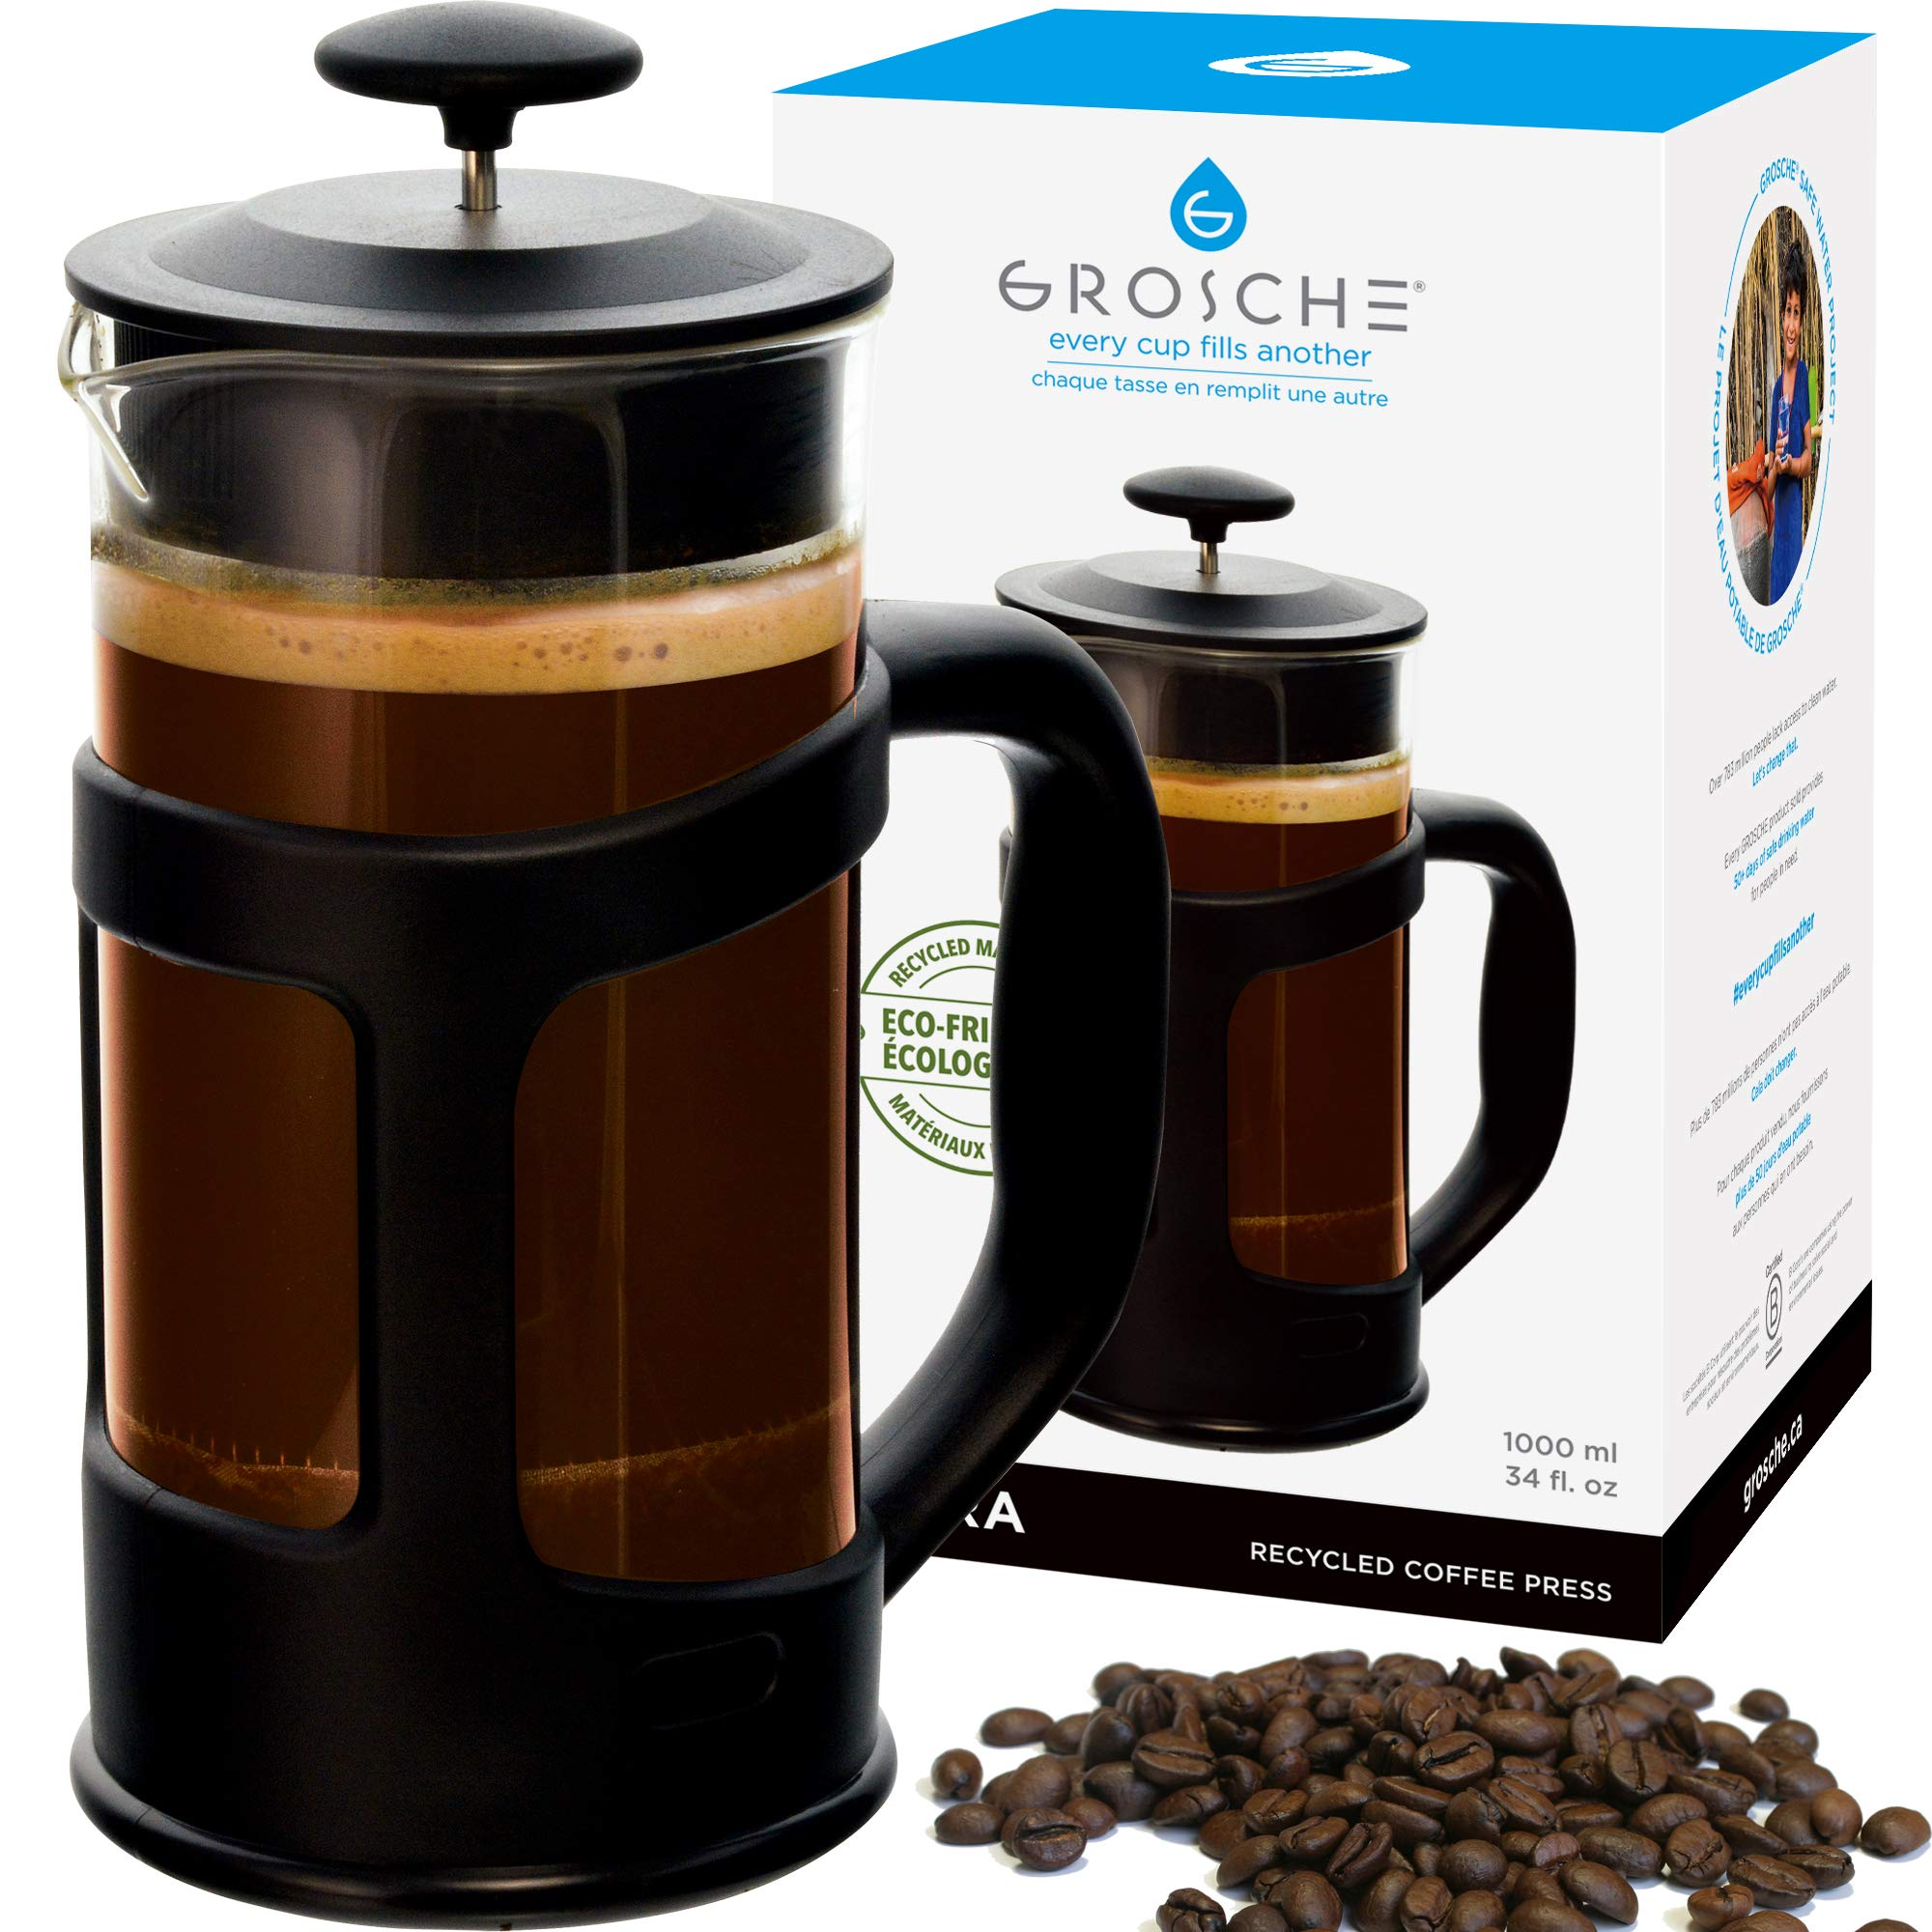 GROSCHE TERRA Recycled French Press - The worlds